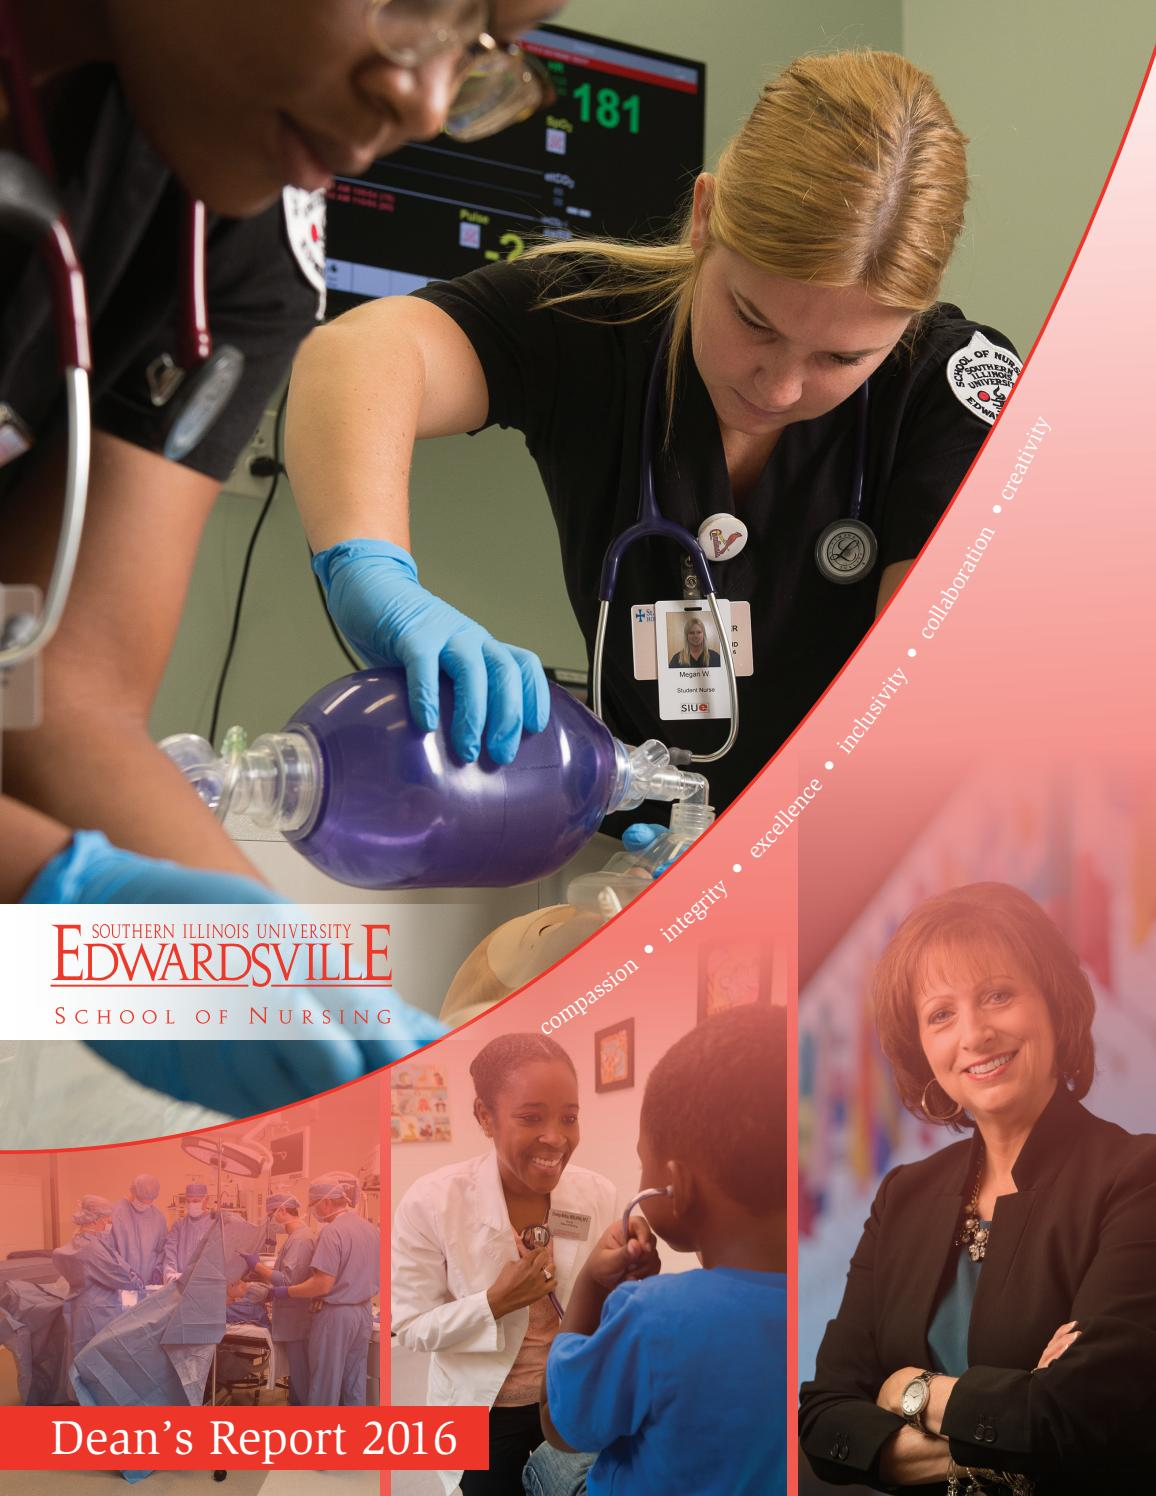 2016 SIUE School of Nursing Dean's Report by SIUE - issuu